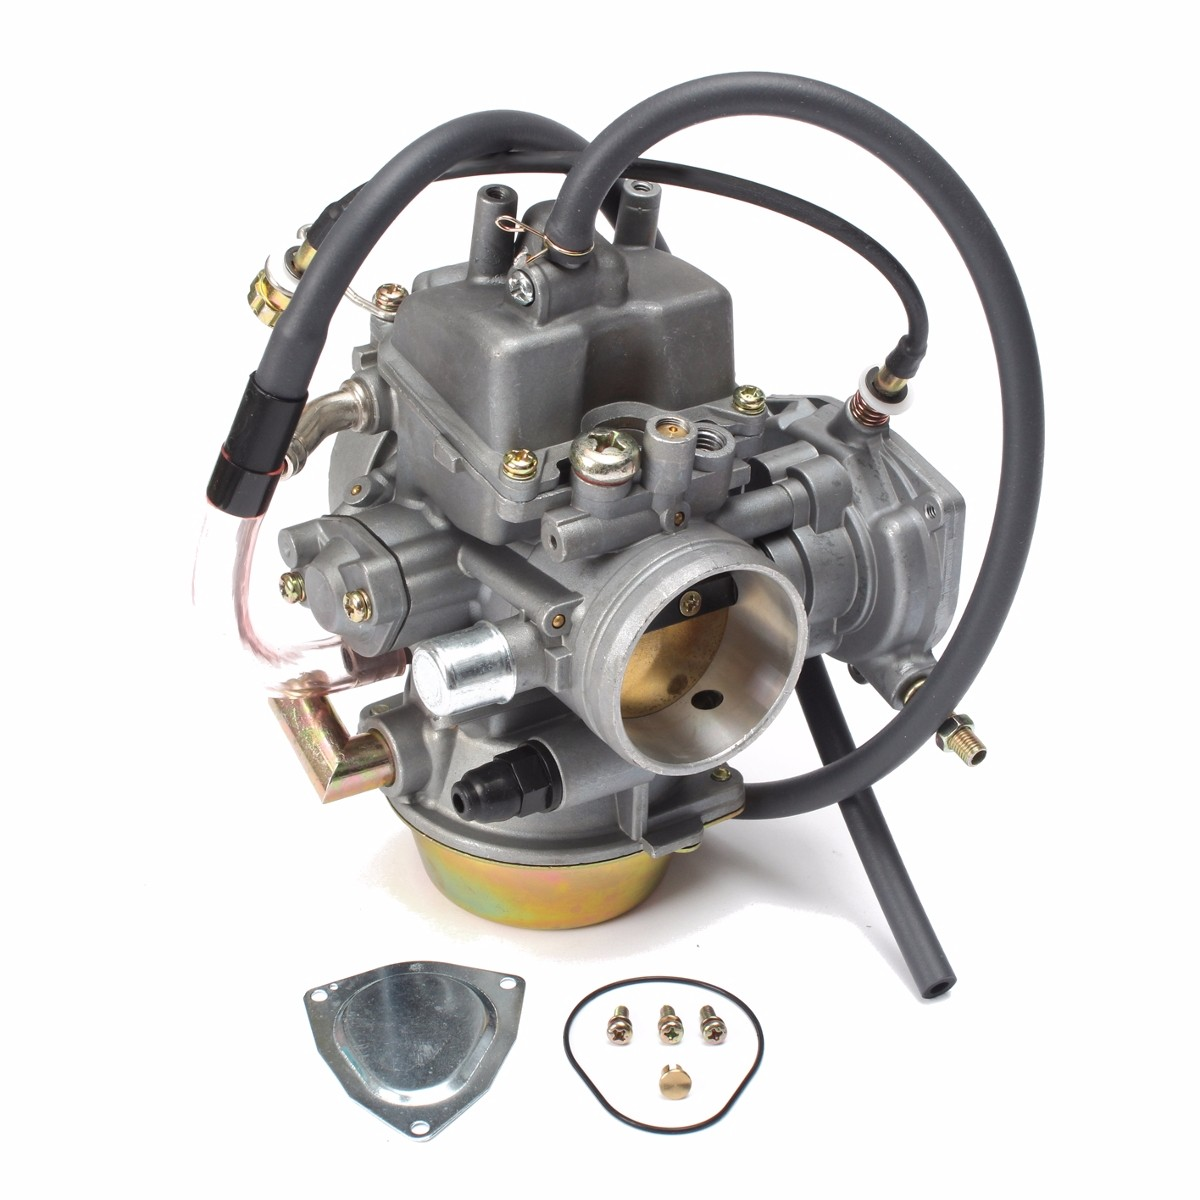 Engine Carburetor Carb Kit Replacement For Yamaha ATV Grizzly 600 YFM660 02-2008 wheel bearing for yamaha grizzly 660 700 550 atv yfm660 93305 00602 00 4 pcs